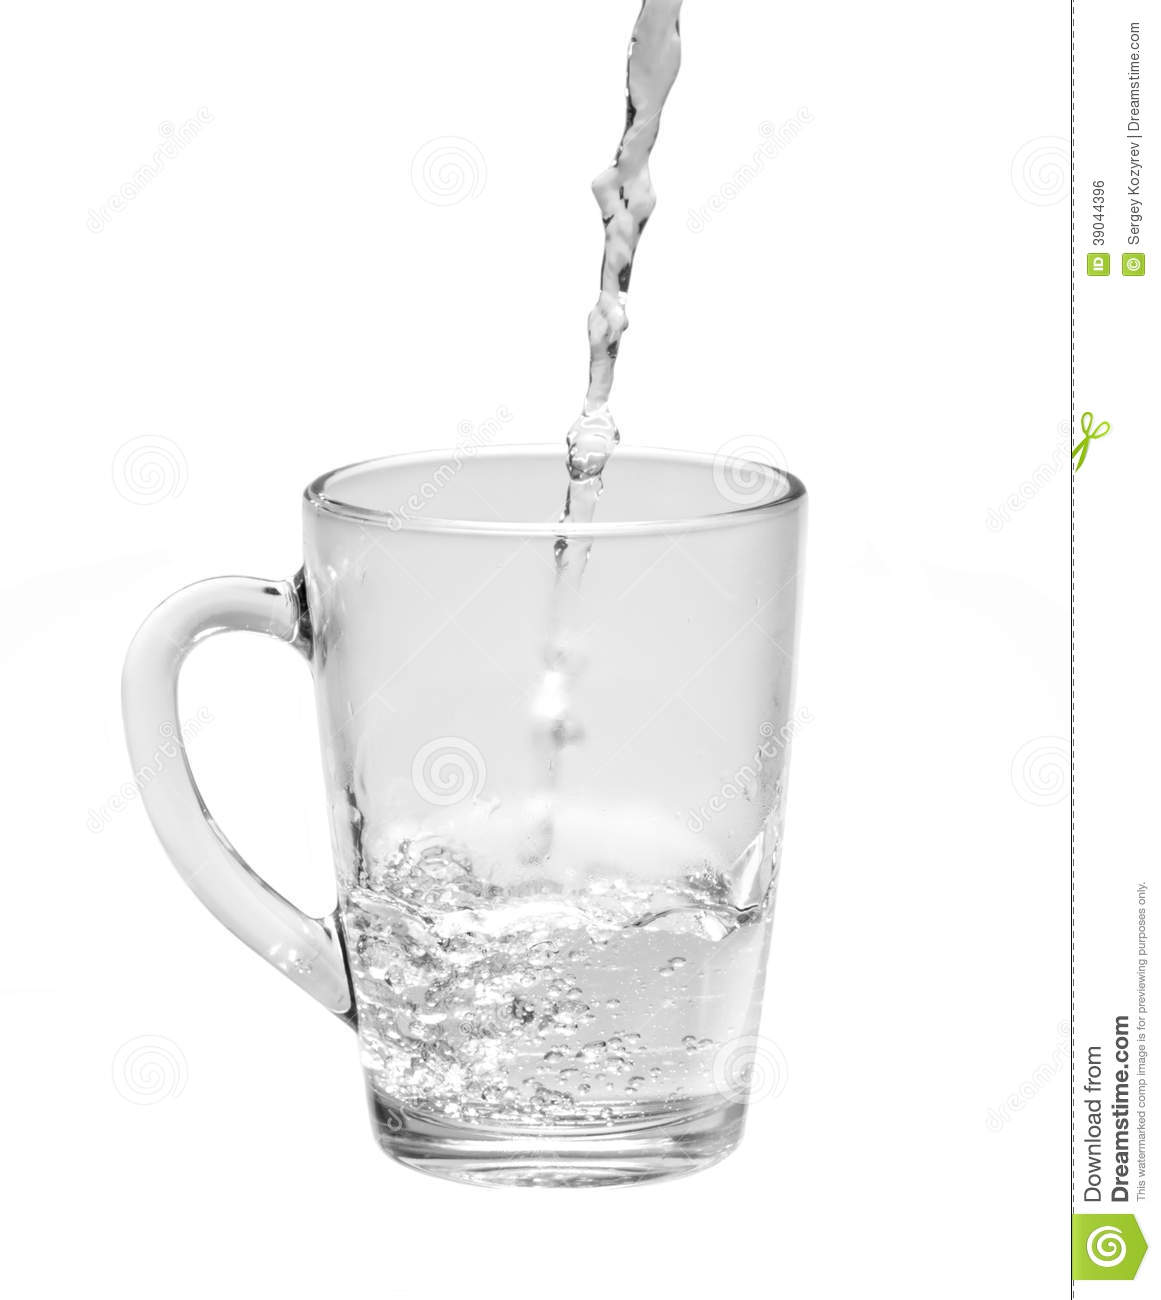 Glass Cup Stock Photo - Image: 39044396